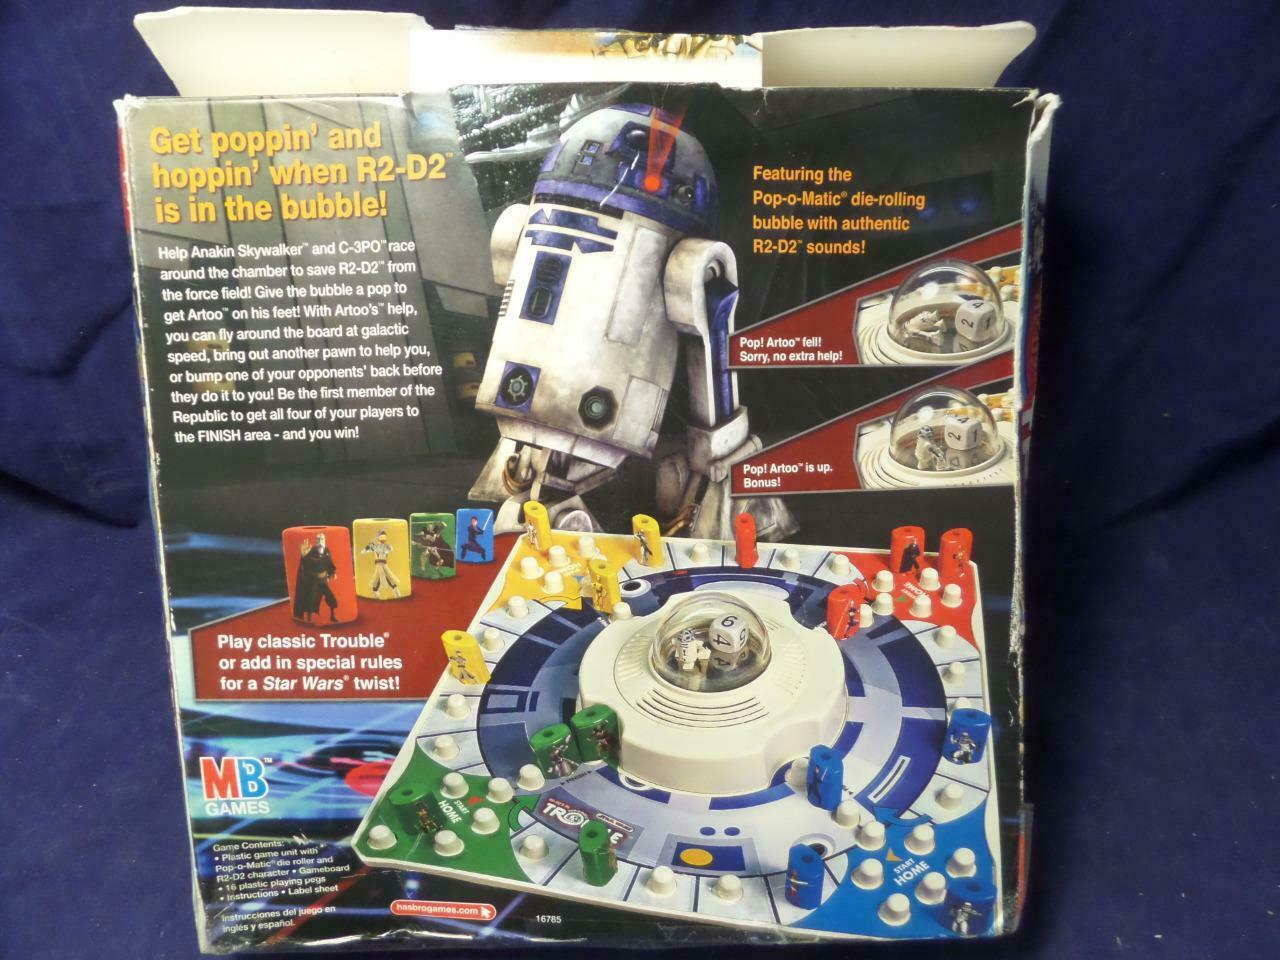 Star Wars Edition R2 D2 Is In Trouble Popomatic Game Disney